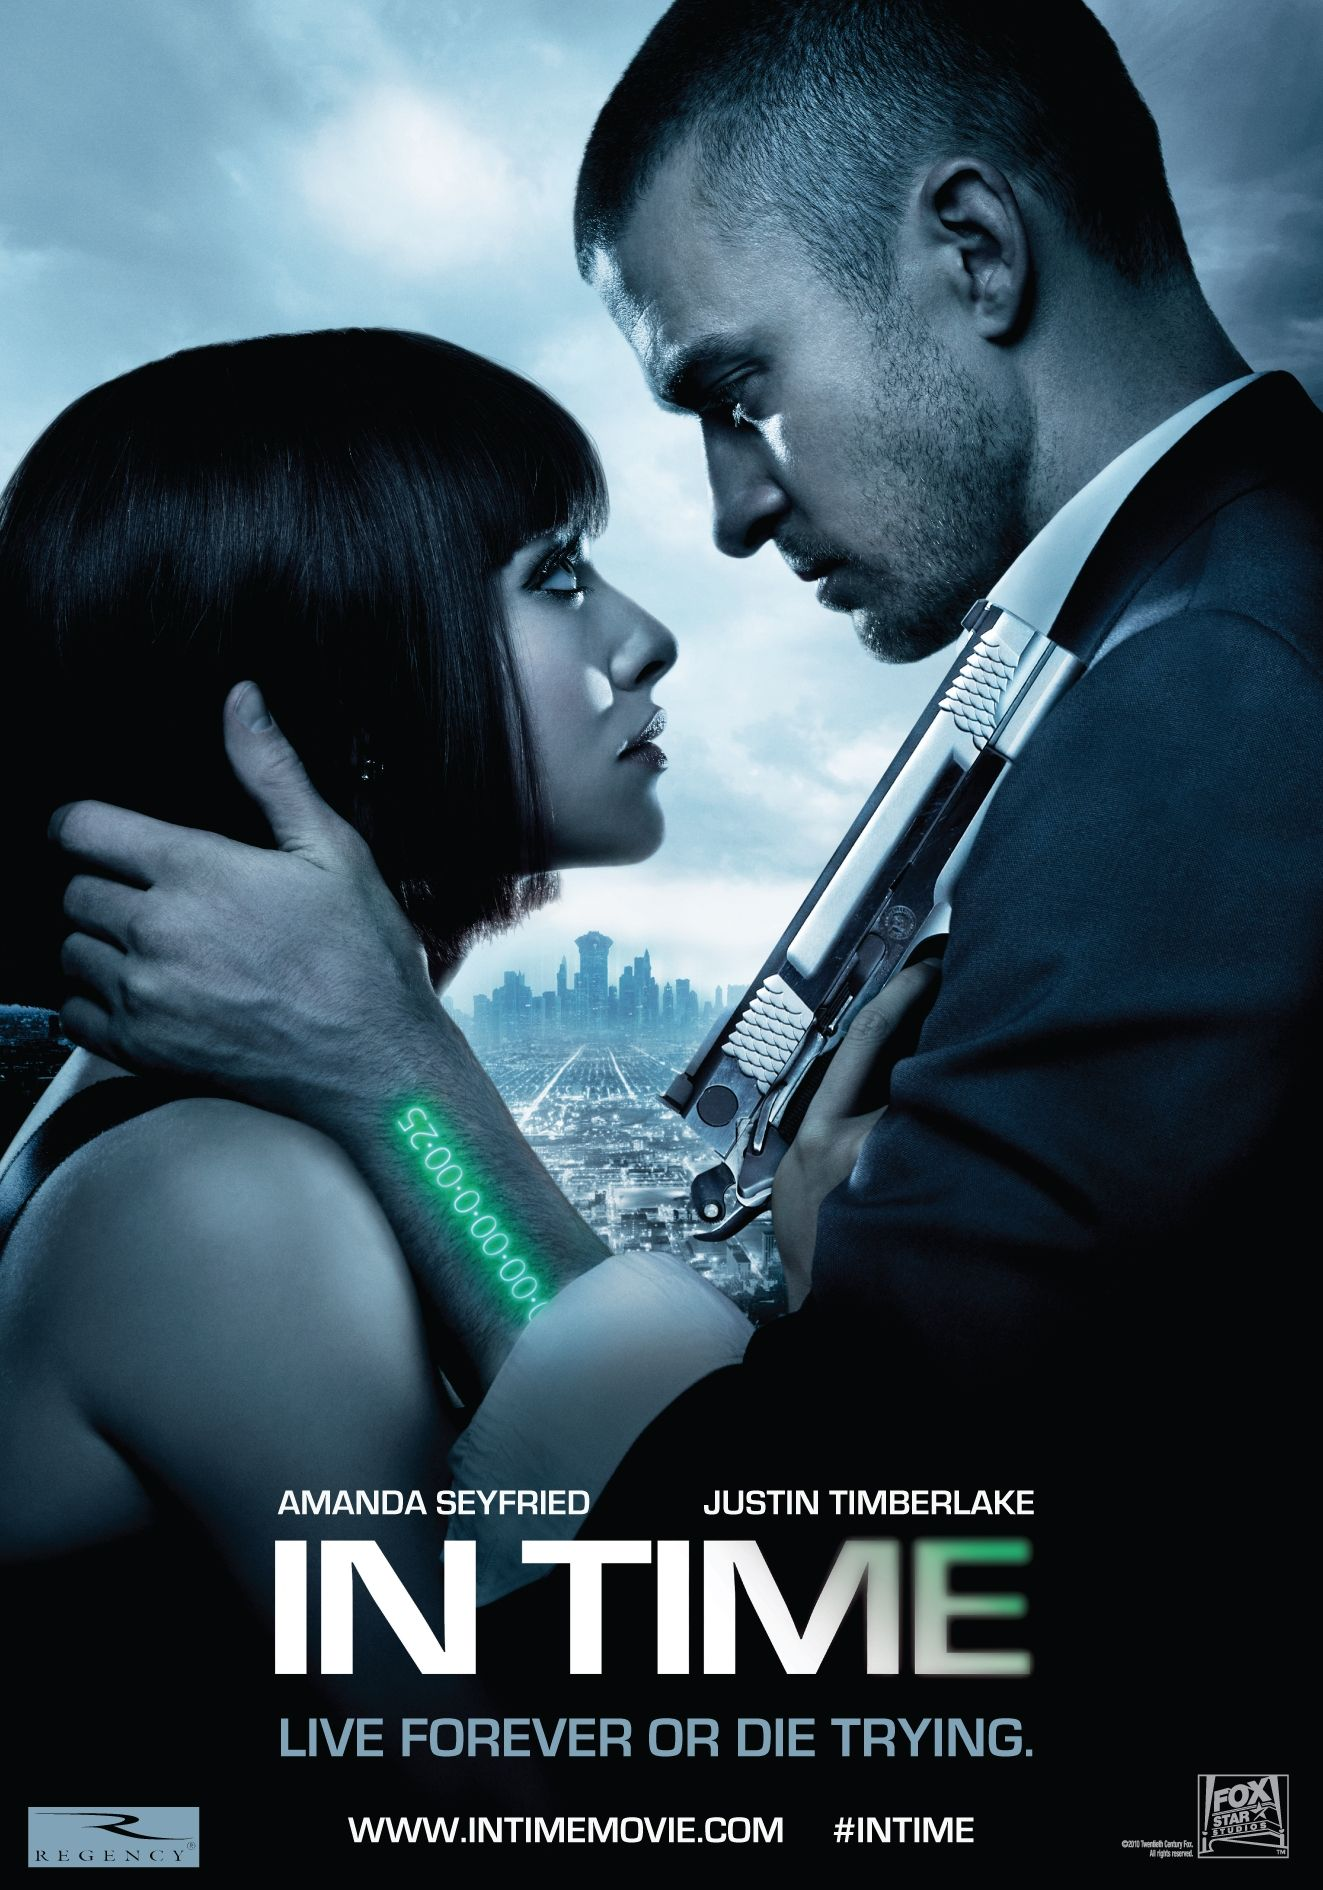 In Time 2011 A Film By Andrew Niccol Movies Amanda Seyfried Justin Timberlake Olivia Wilde Shyloh Sci Fi Films Sci Fi Movies Movies Worth Watching